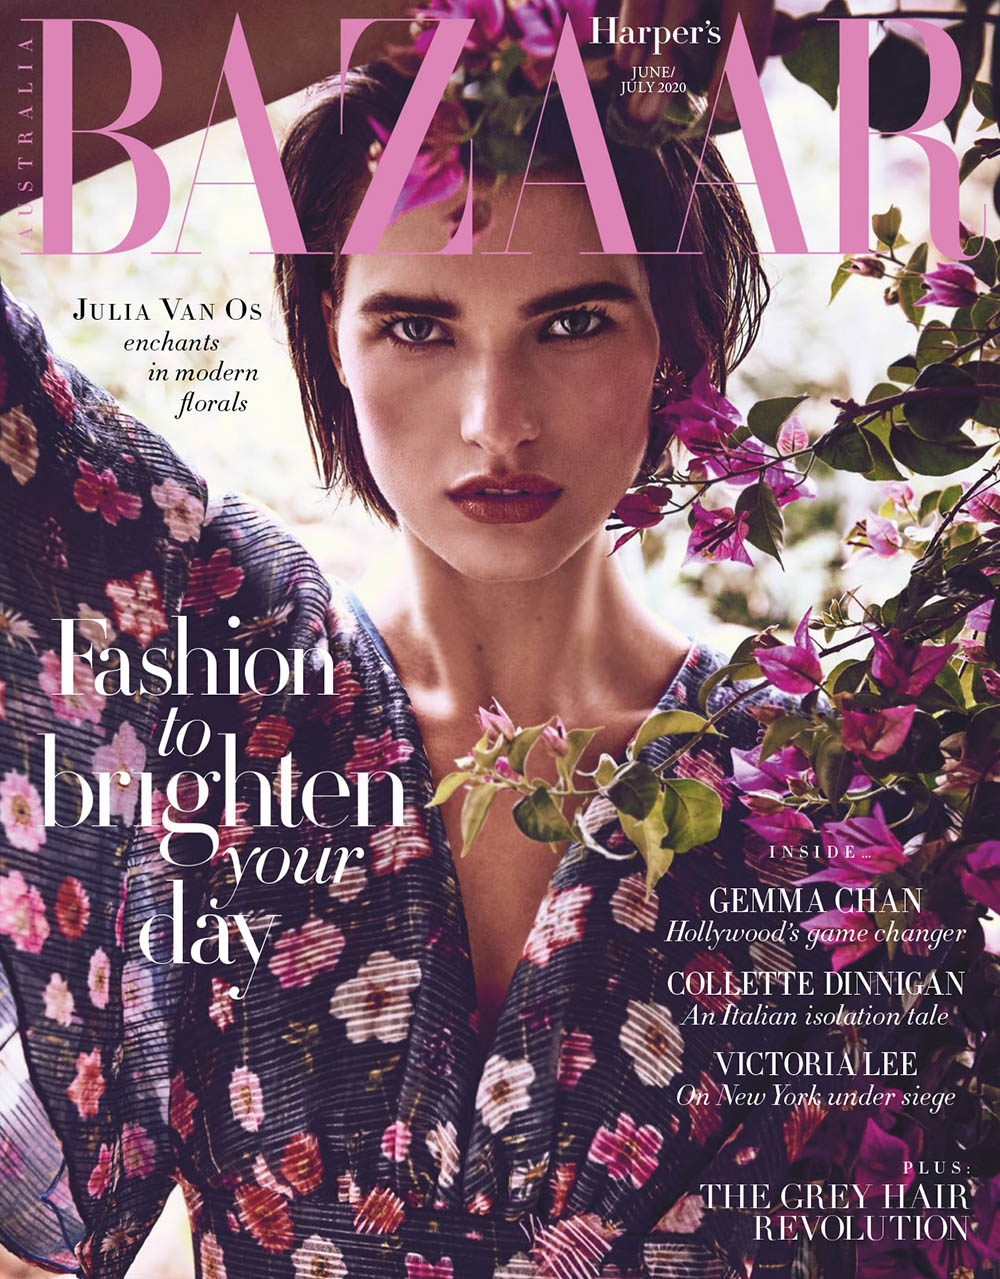 Julia van Os covers Harper's Bazaar Australia June July 2020 by Regan Cameron